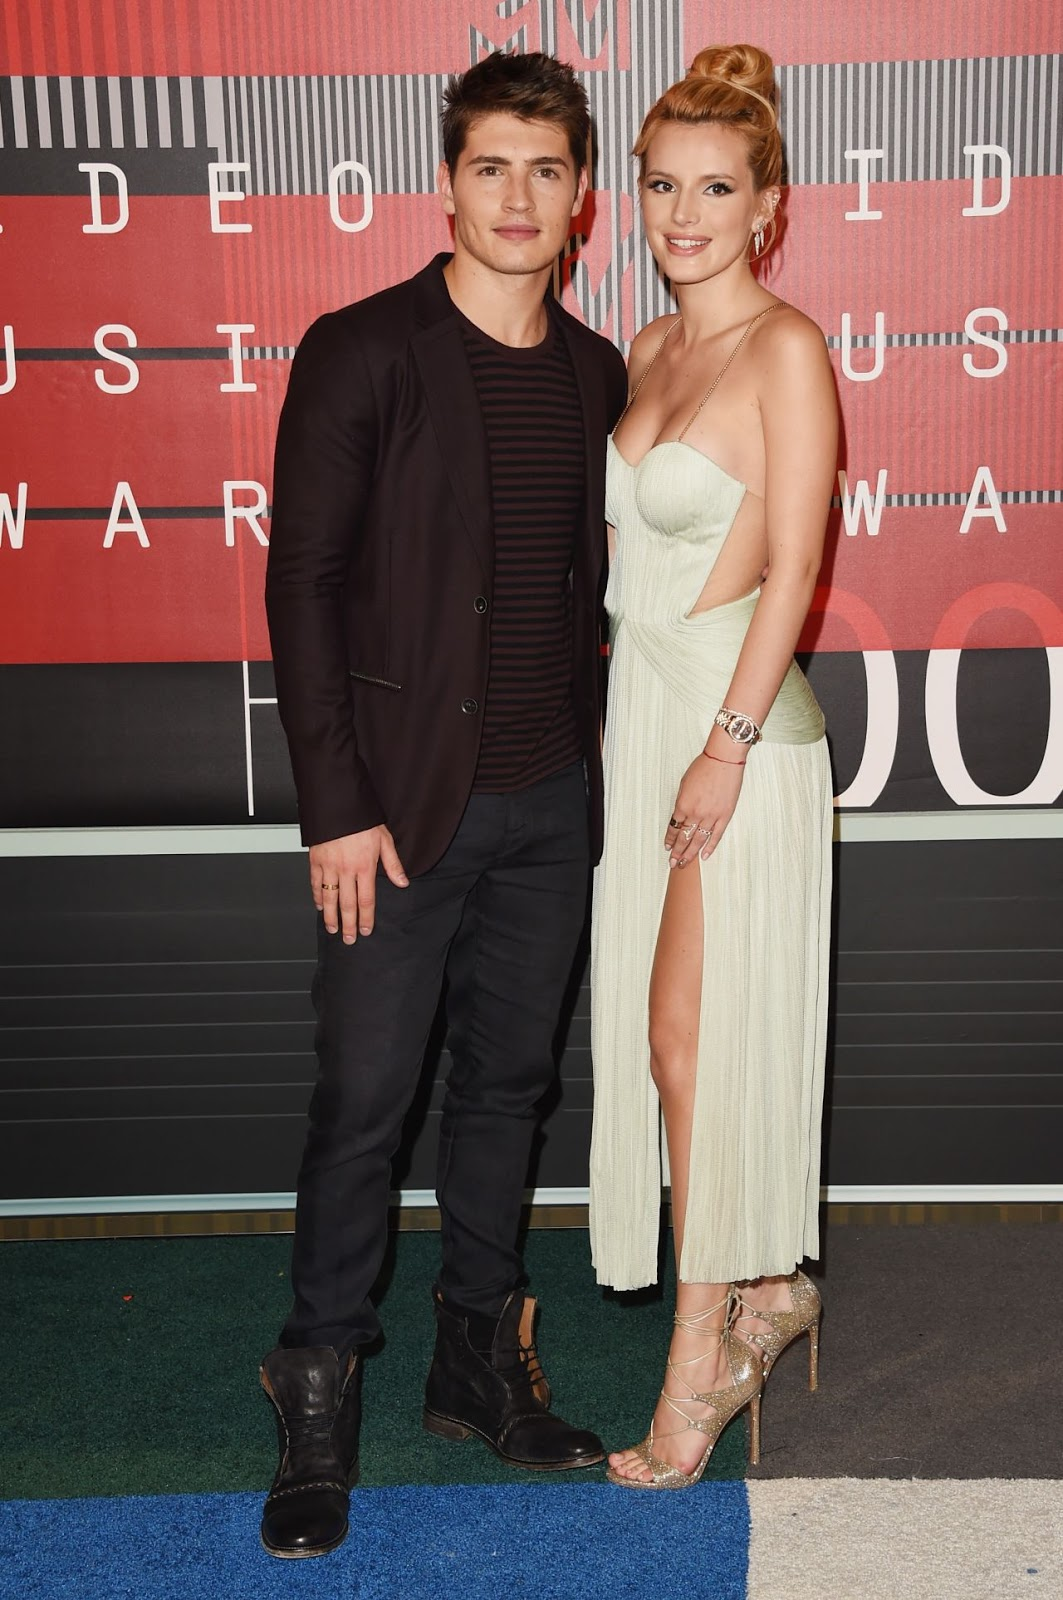 Actress Bella Thorne and actor Gregg Sulkin attend the 2015 MTV Video Music Awards at Microsoft Theater on August 30, 2015 in Los Angeles